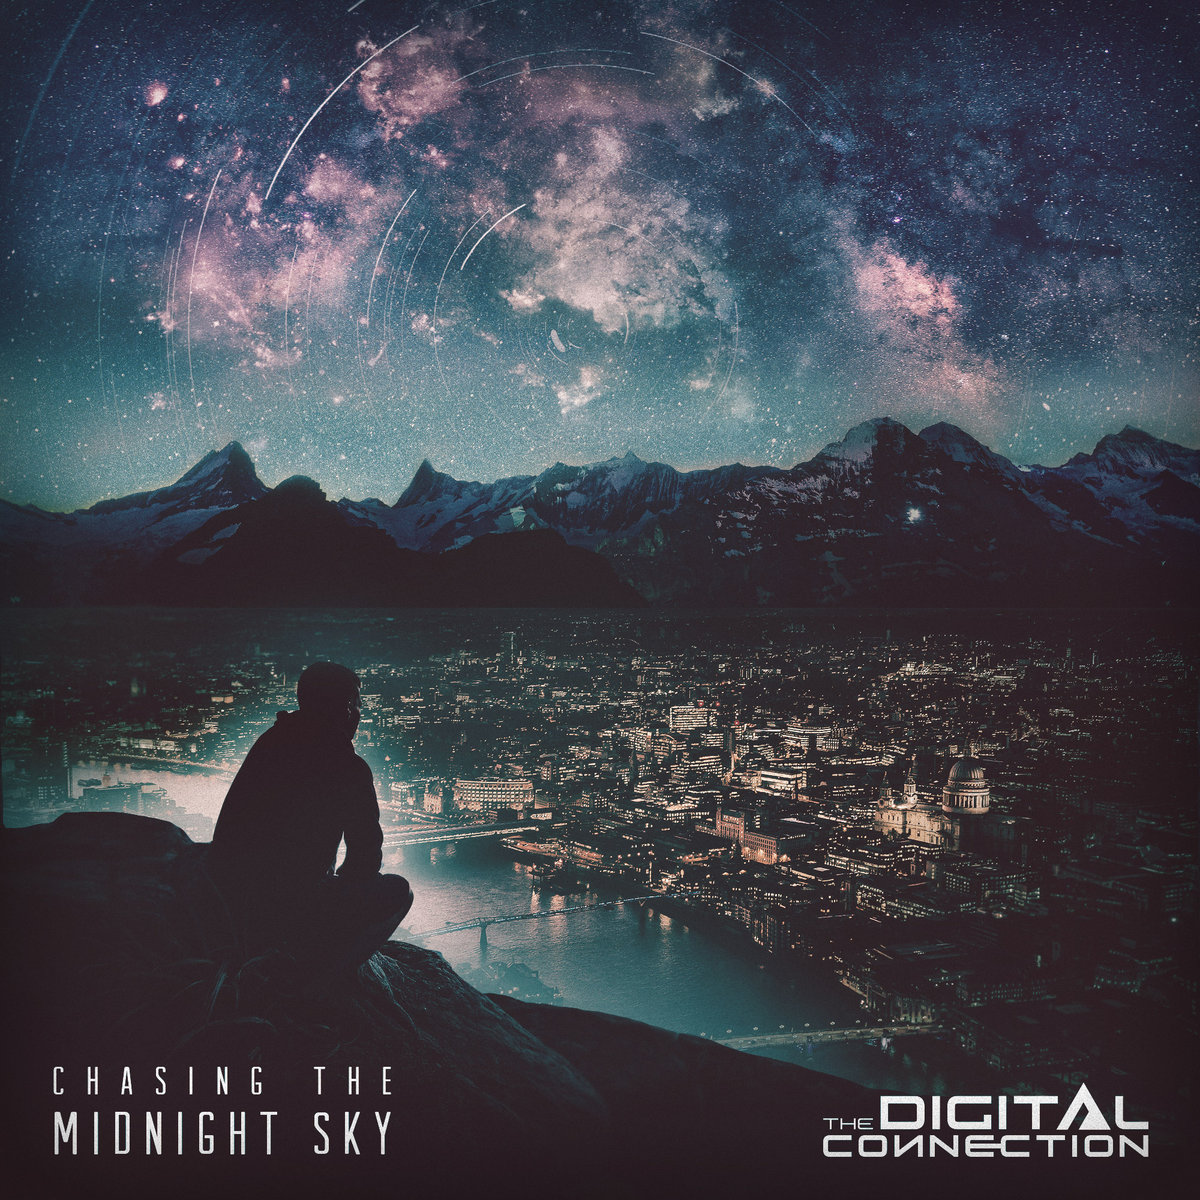 The Digital Connection - Bad Trip @ 'Chasing The Midnight Sky' album (colorado, idm)